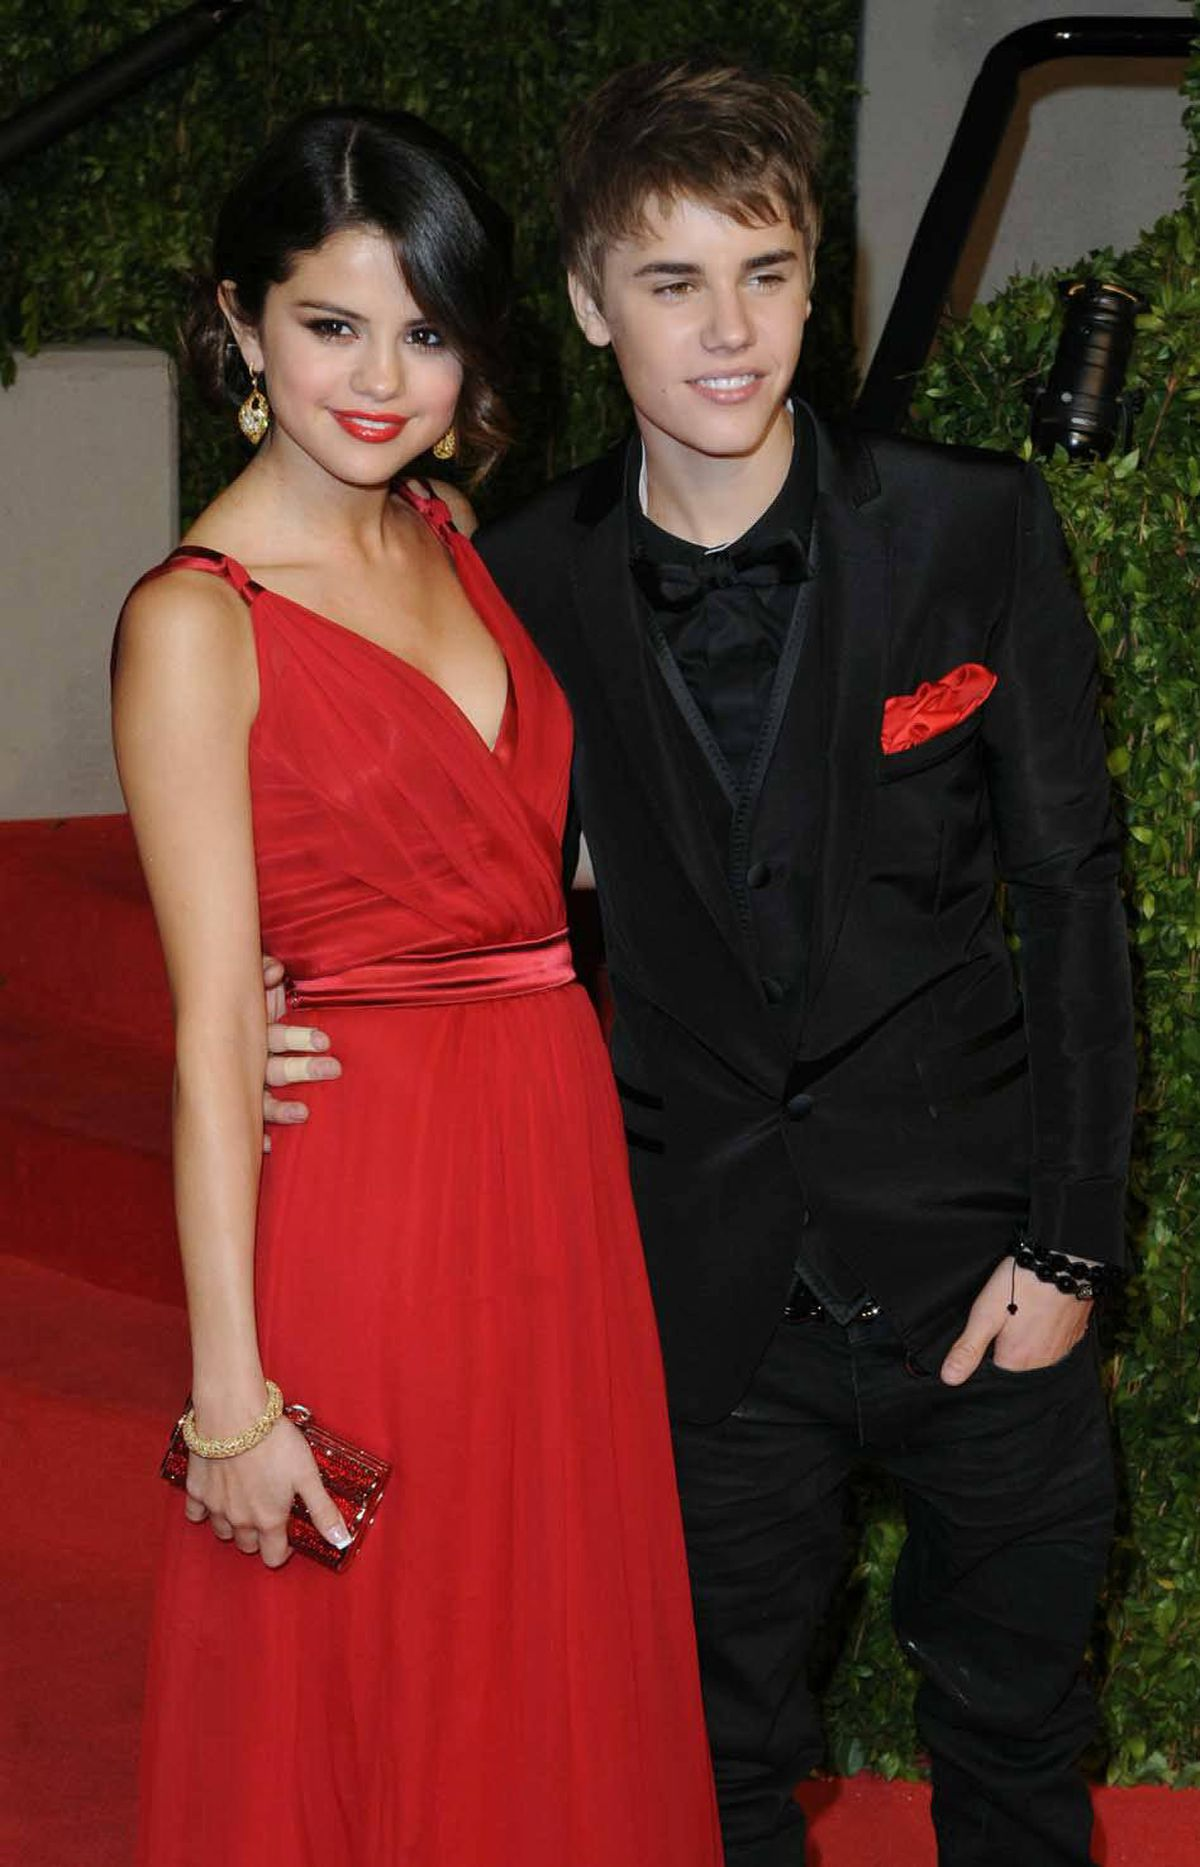 Helping to turn February into the longest month of the year, Bieber and his girlfriend Selena Gomez hit the red carpet at the Academy Awards on Feb. 27. This wasn't a Leap Year, was it?